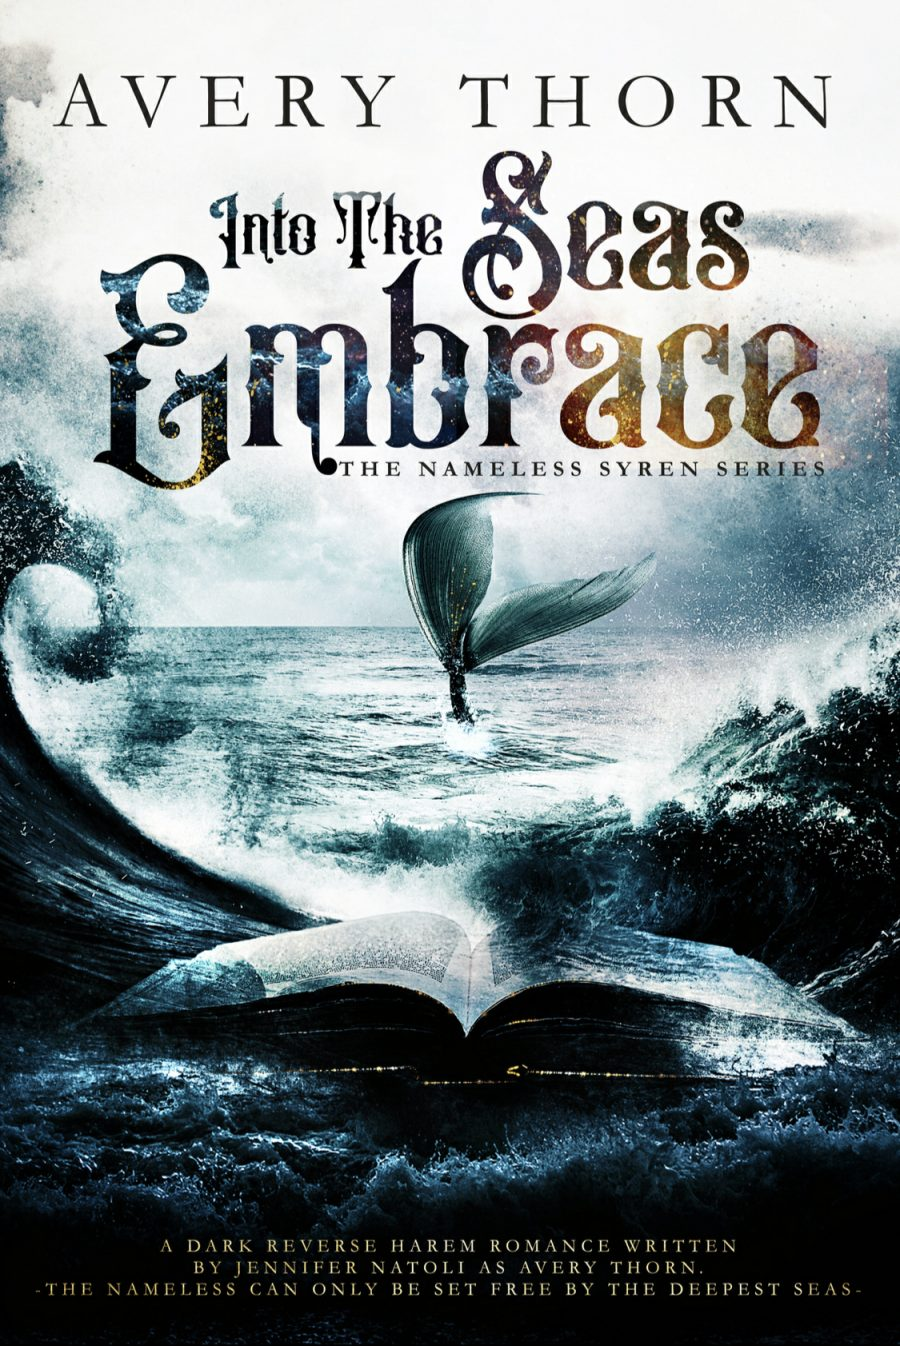 Into The Seas Embrace by Avery Thorn - A Book Review #BookReview #RH #SlowBurn #Fantasy #WhyChoose #Mermaids #NA #ReverseHarem